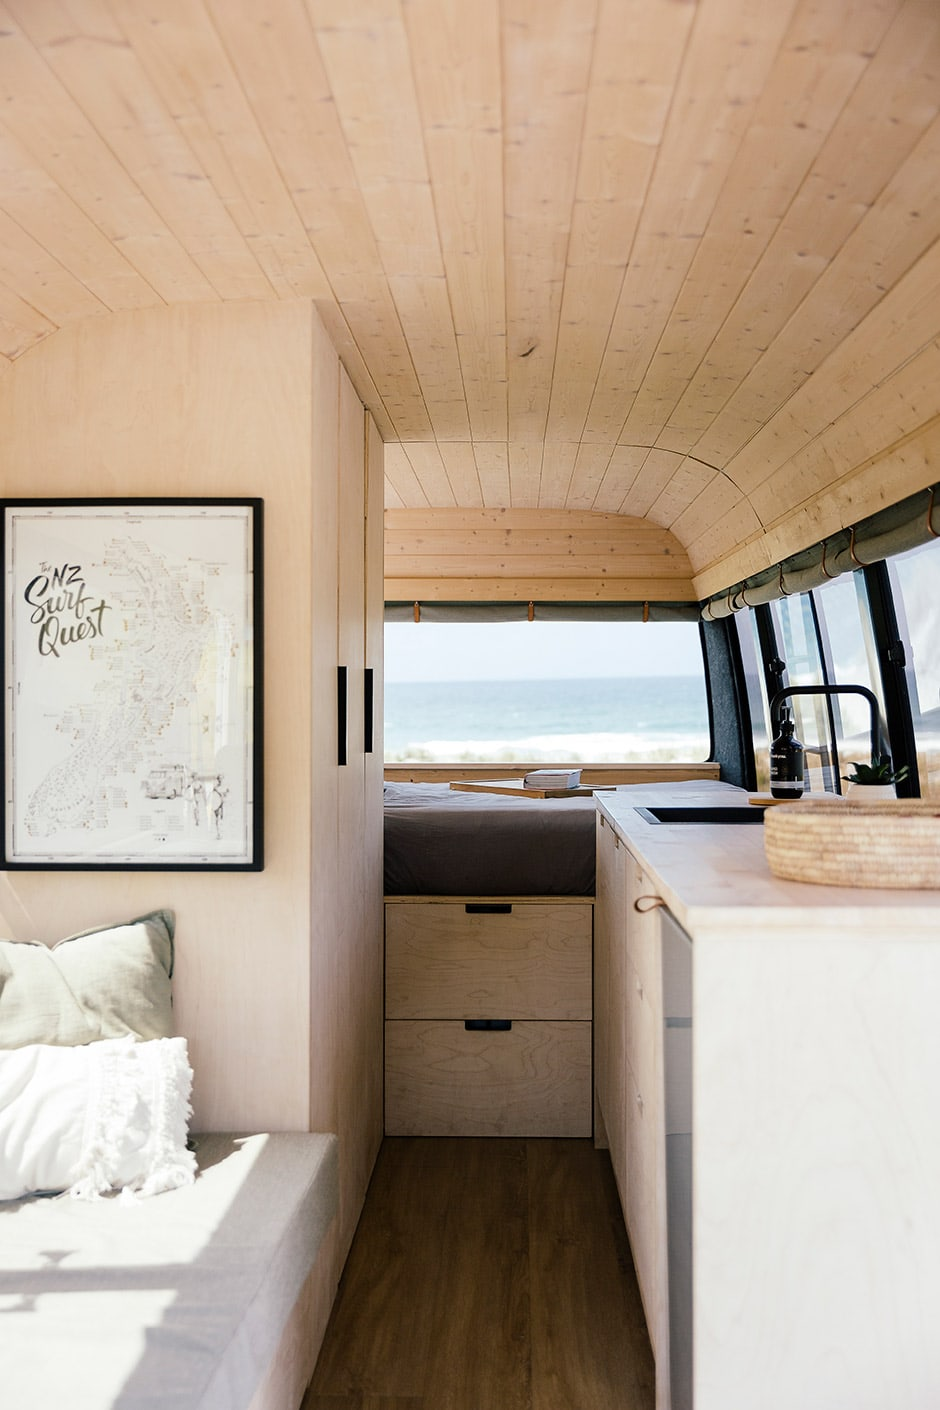 A Scandi style surf van with a plan